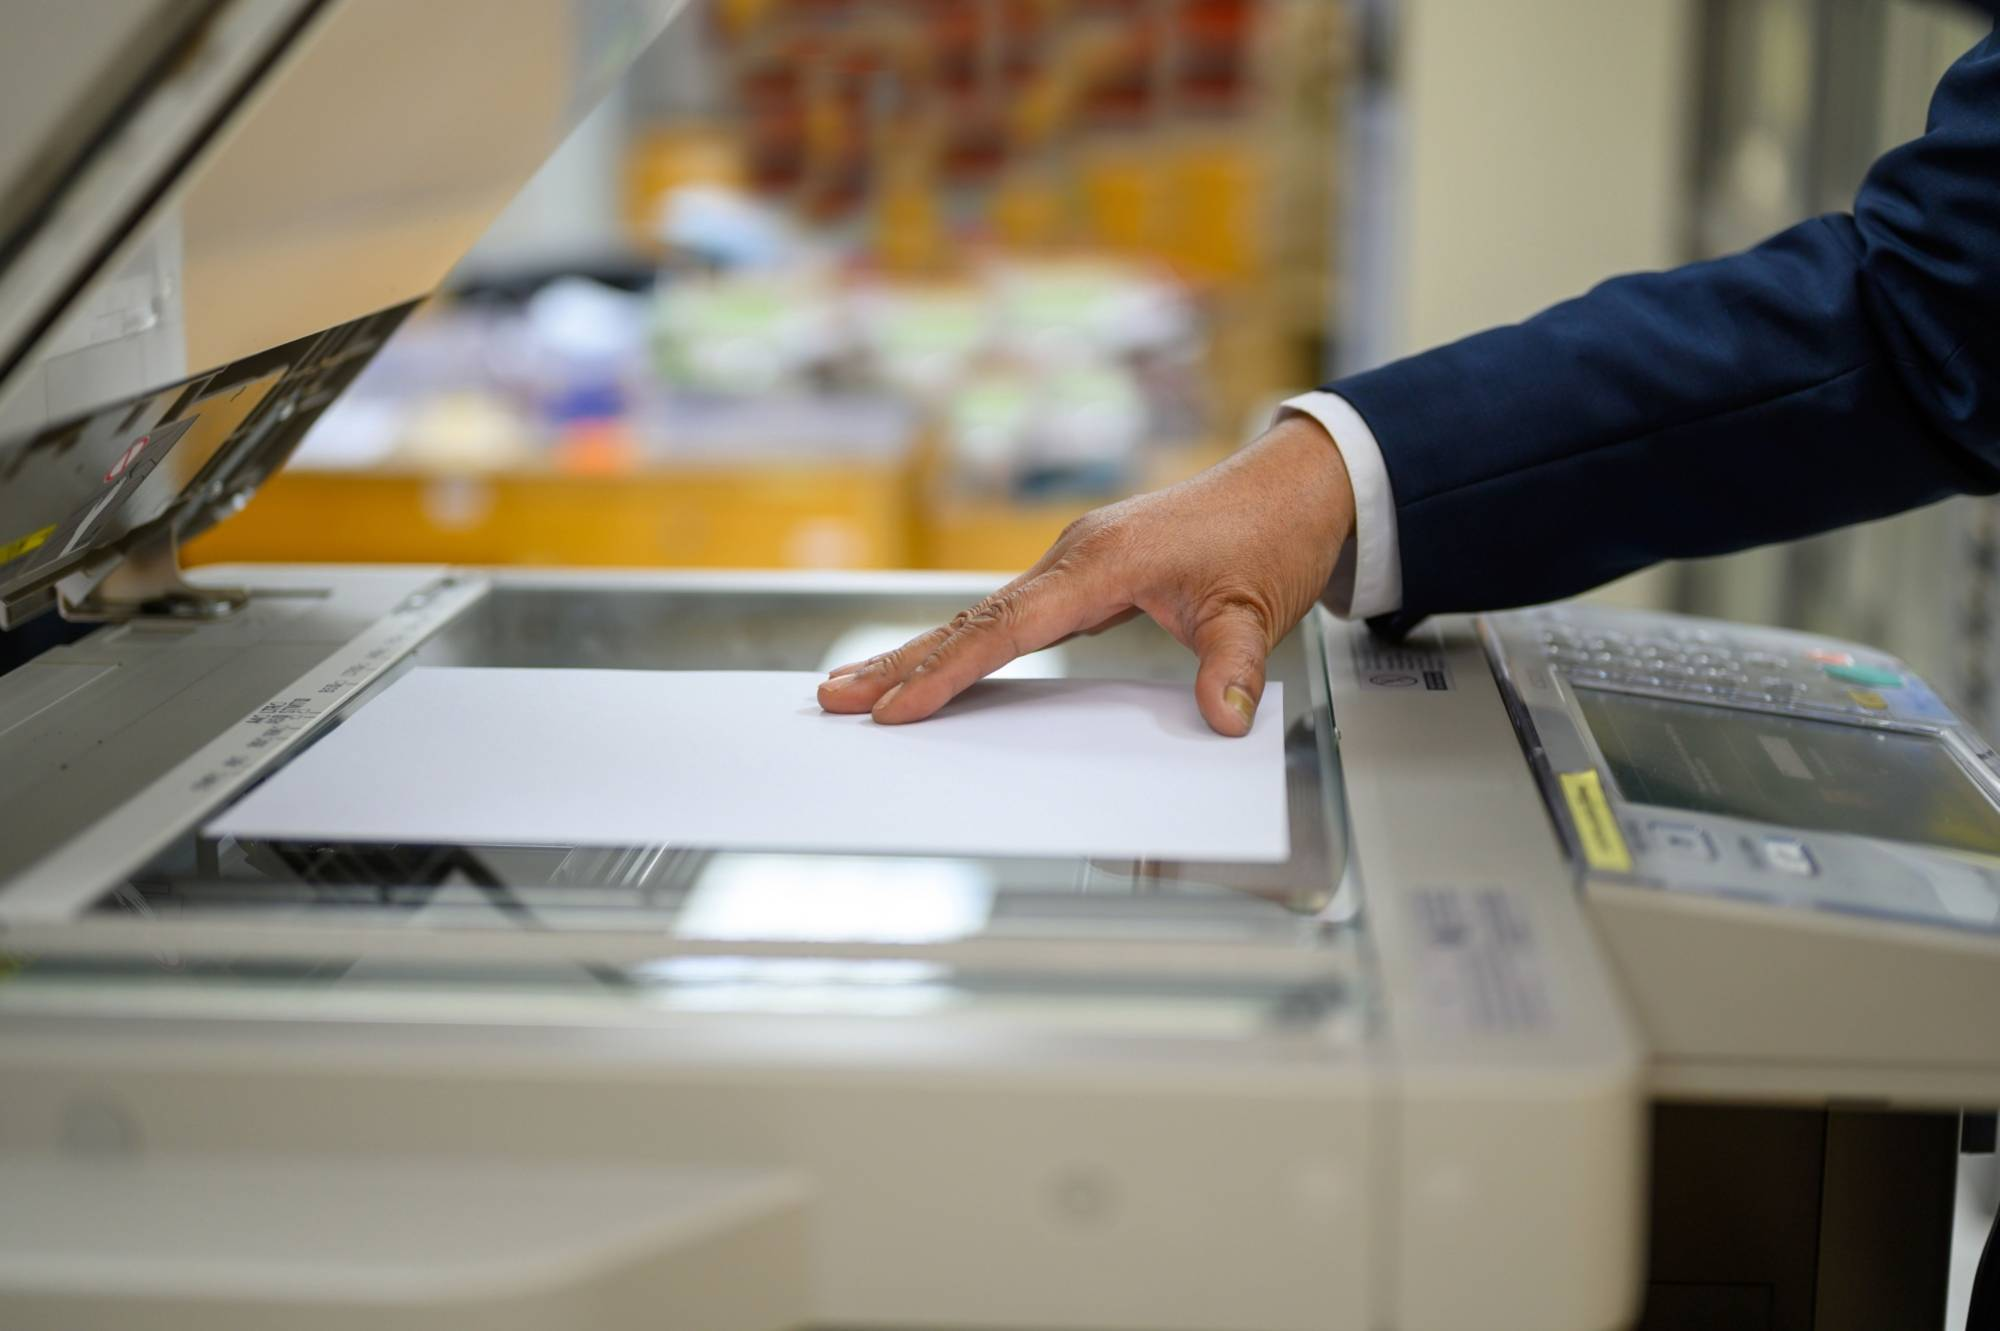 Best Copiers for Your Office